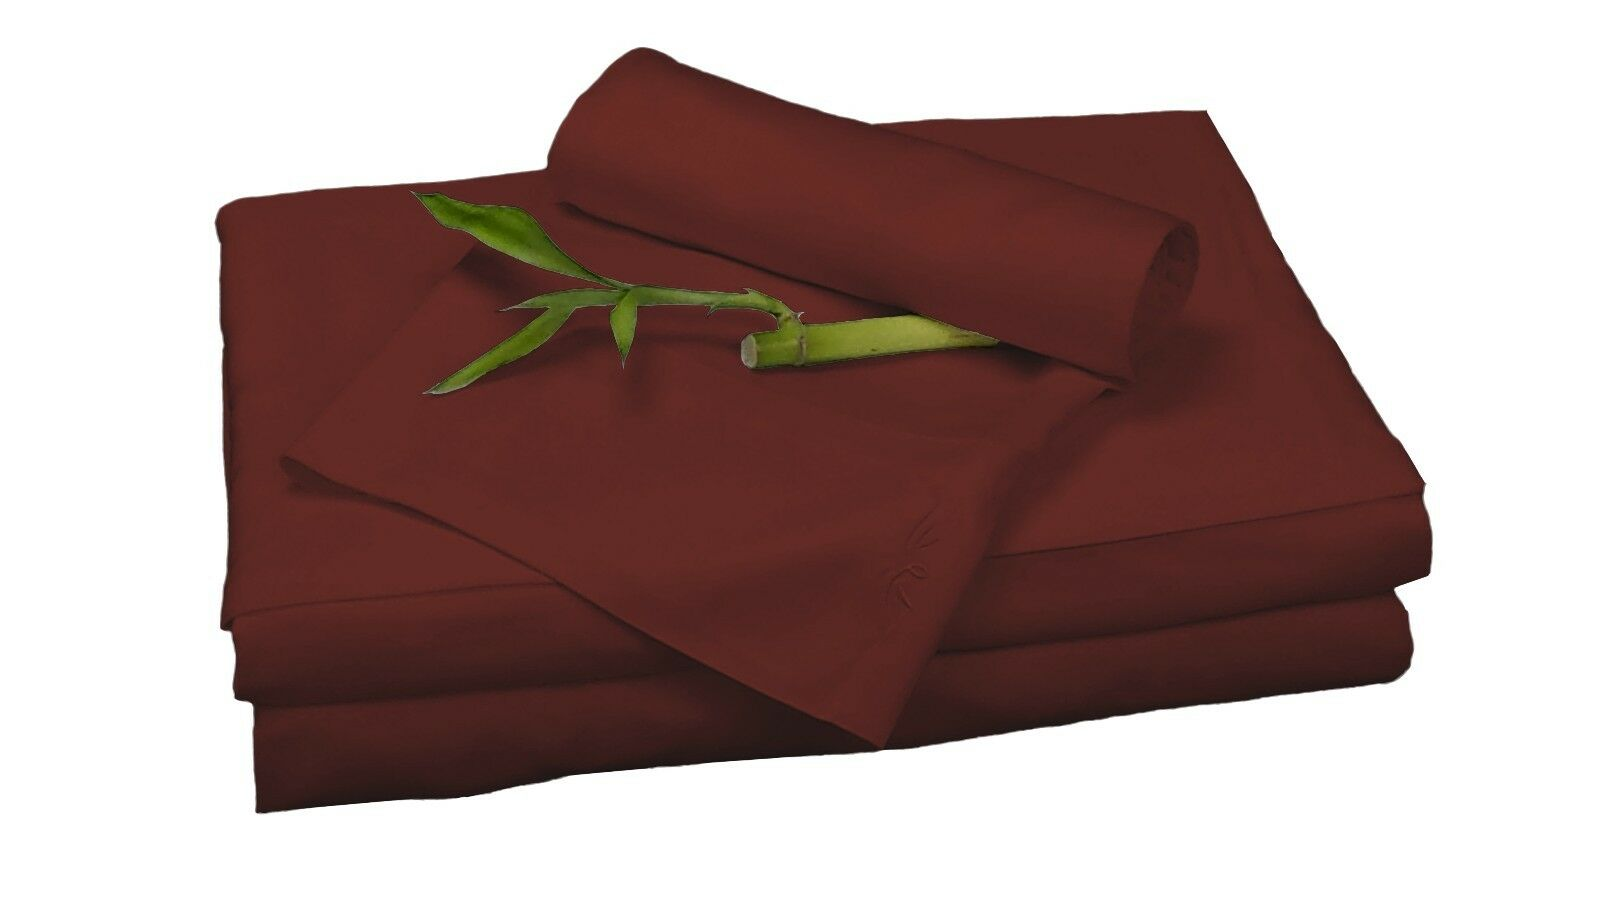 Cayenne 100% BAMBOO Sheet Set - Luxurious Hypo-allergenic Eco-Friendly Sheets